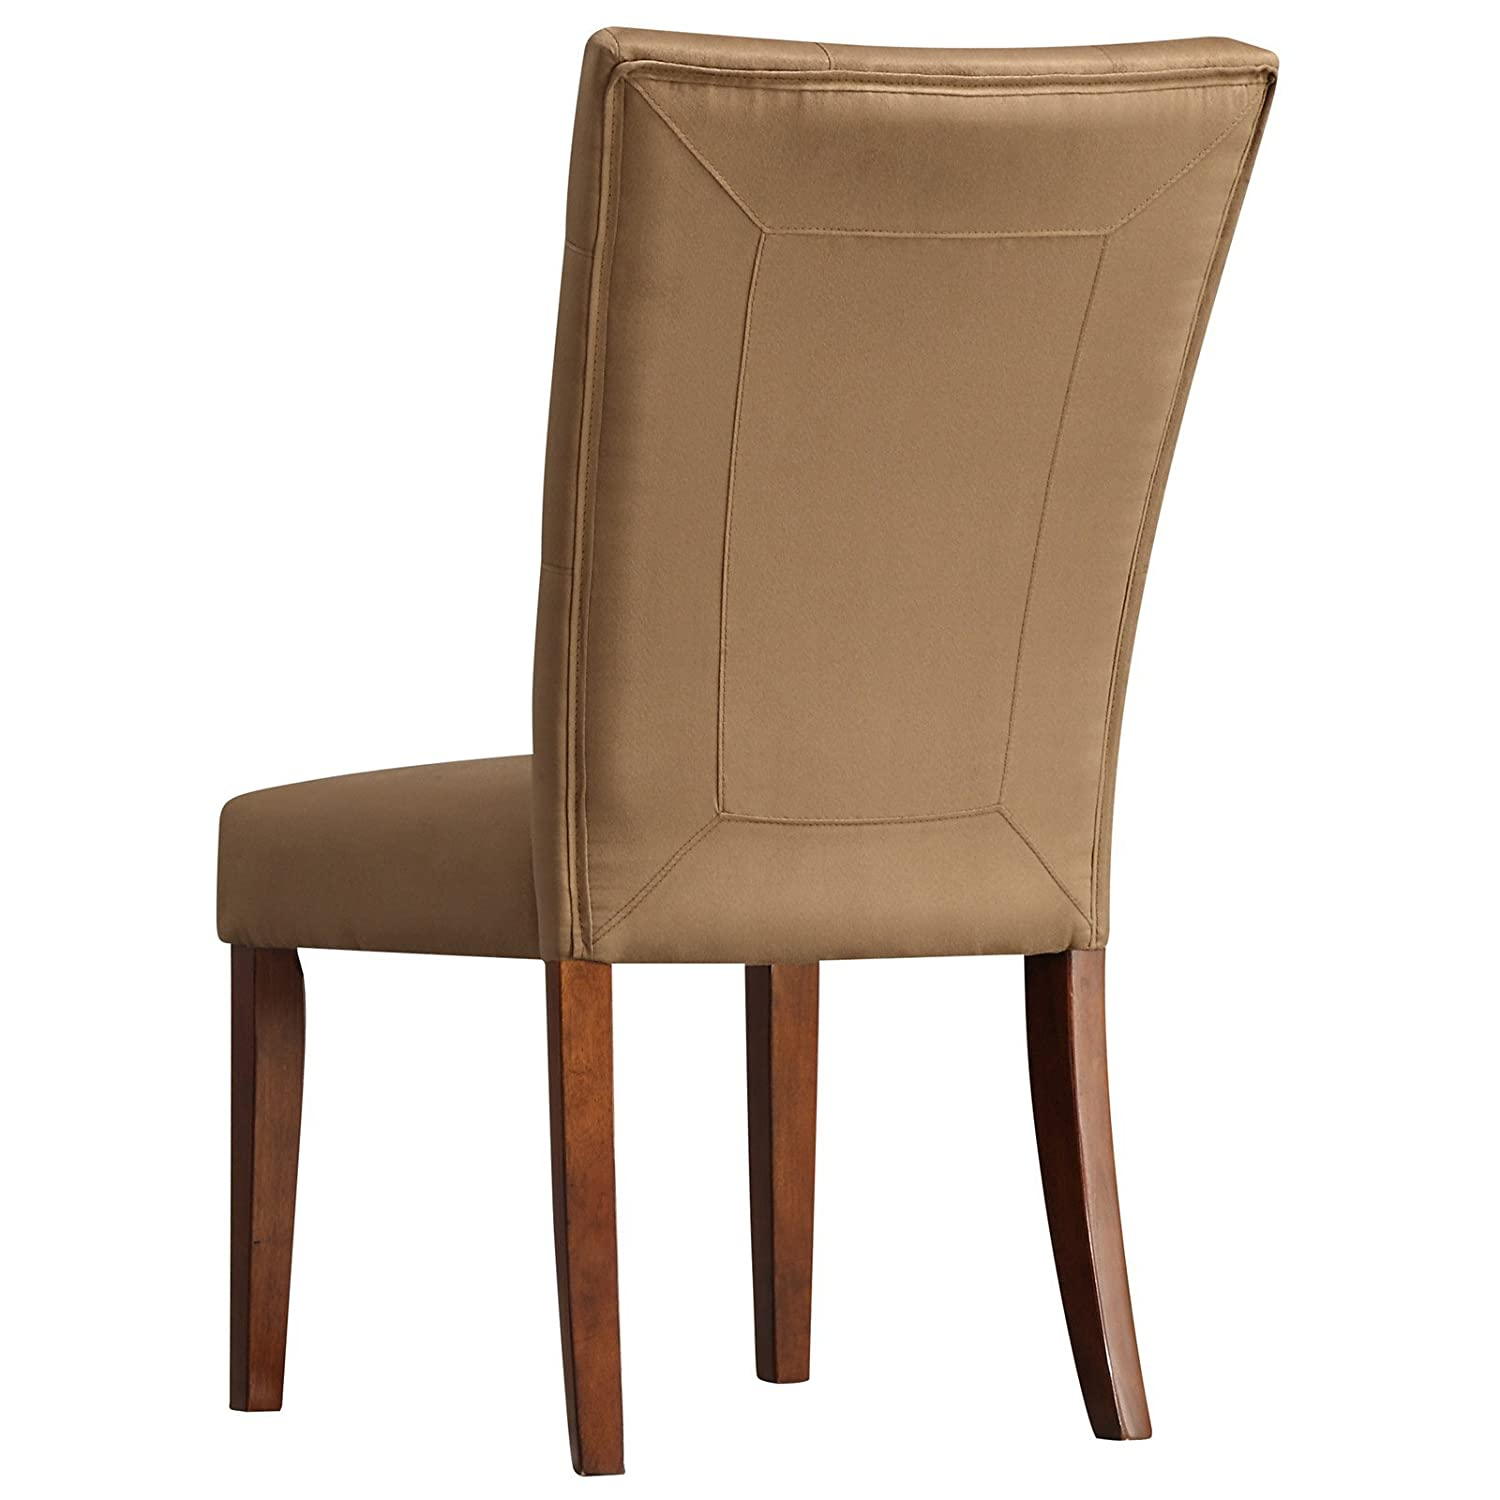 Amazon Homelegance Tufted Parsons Dining Chair Set of 2